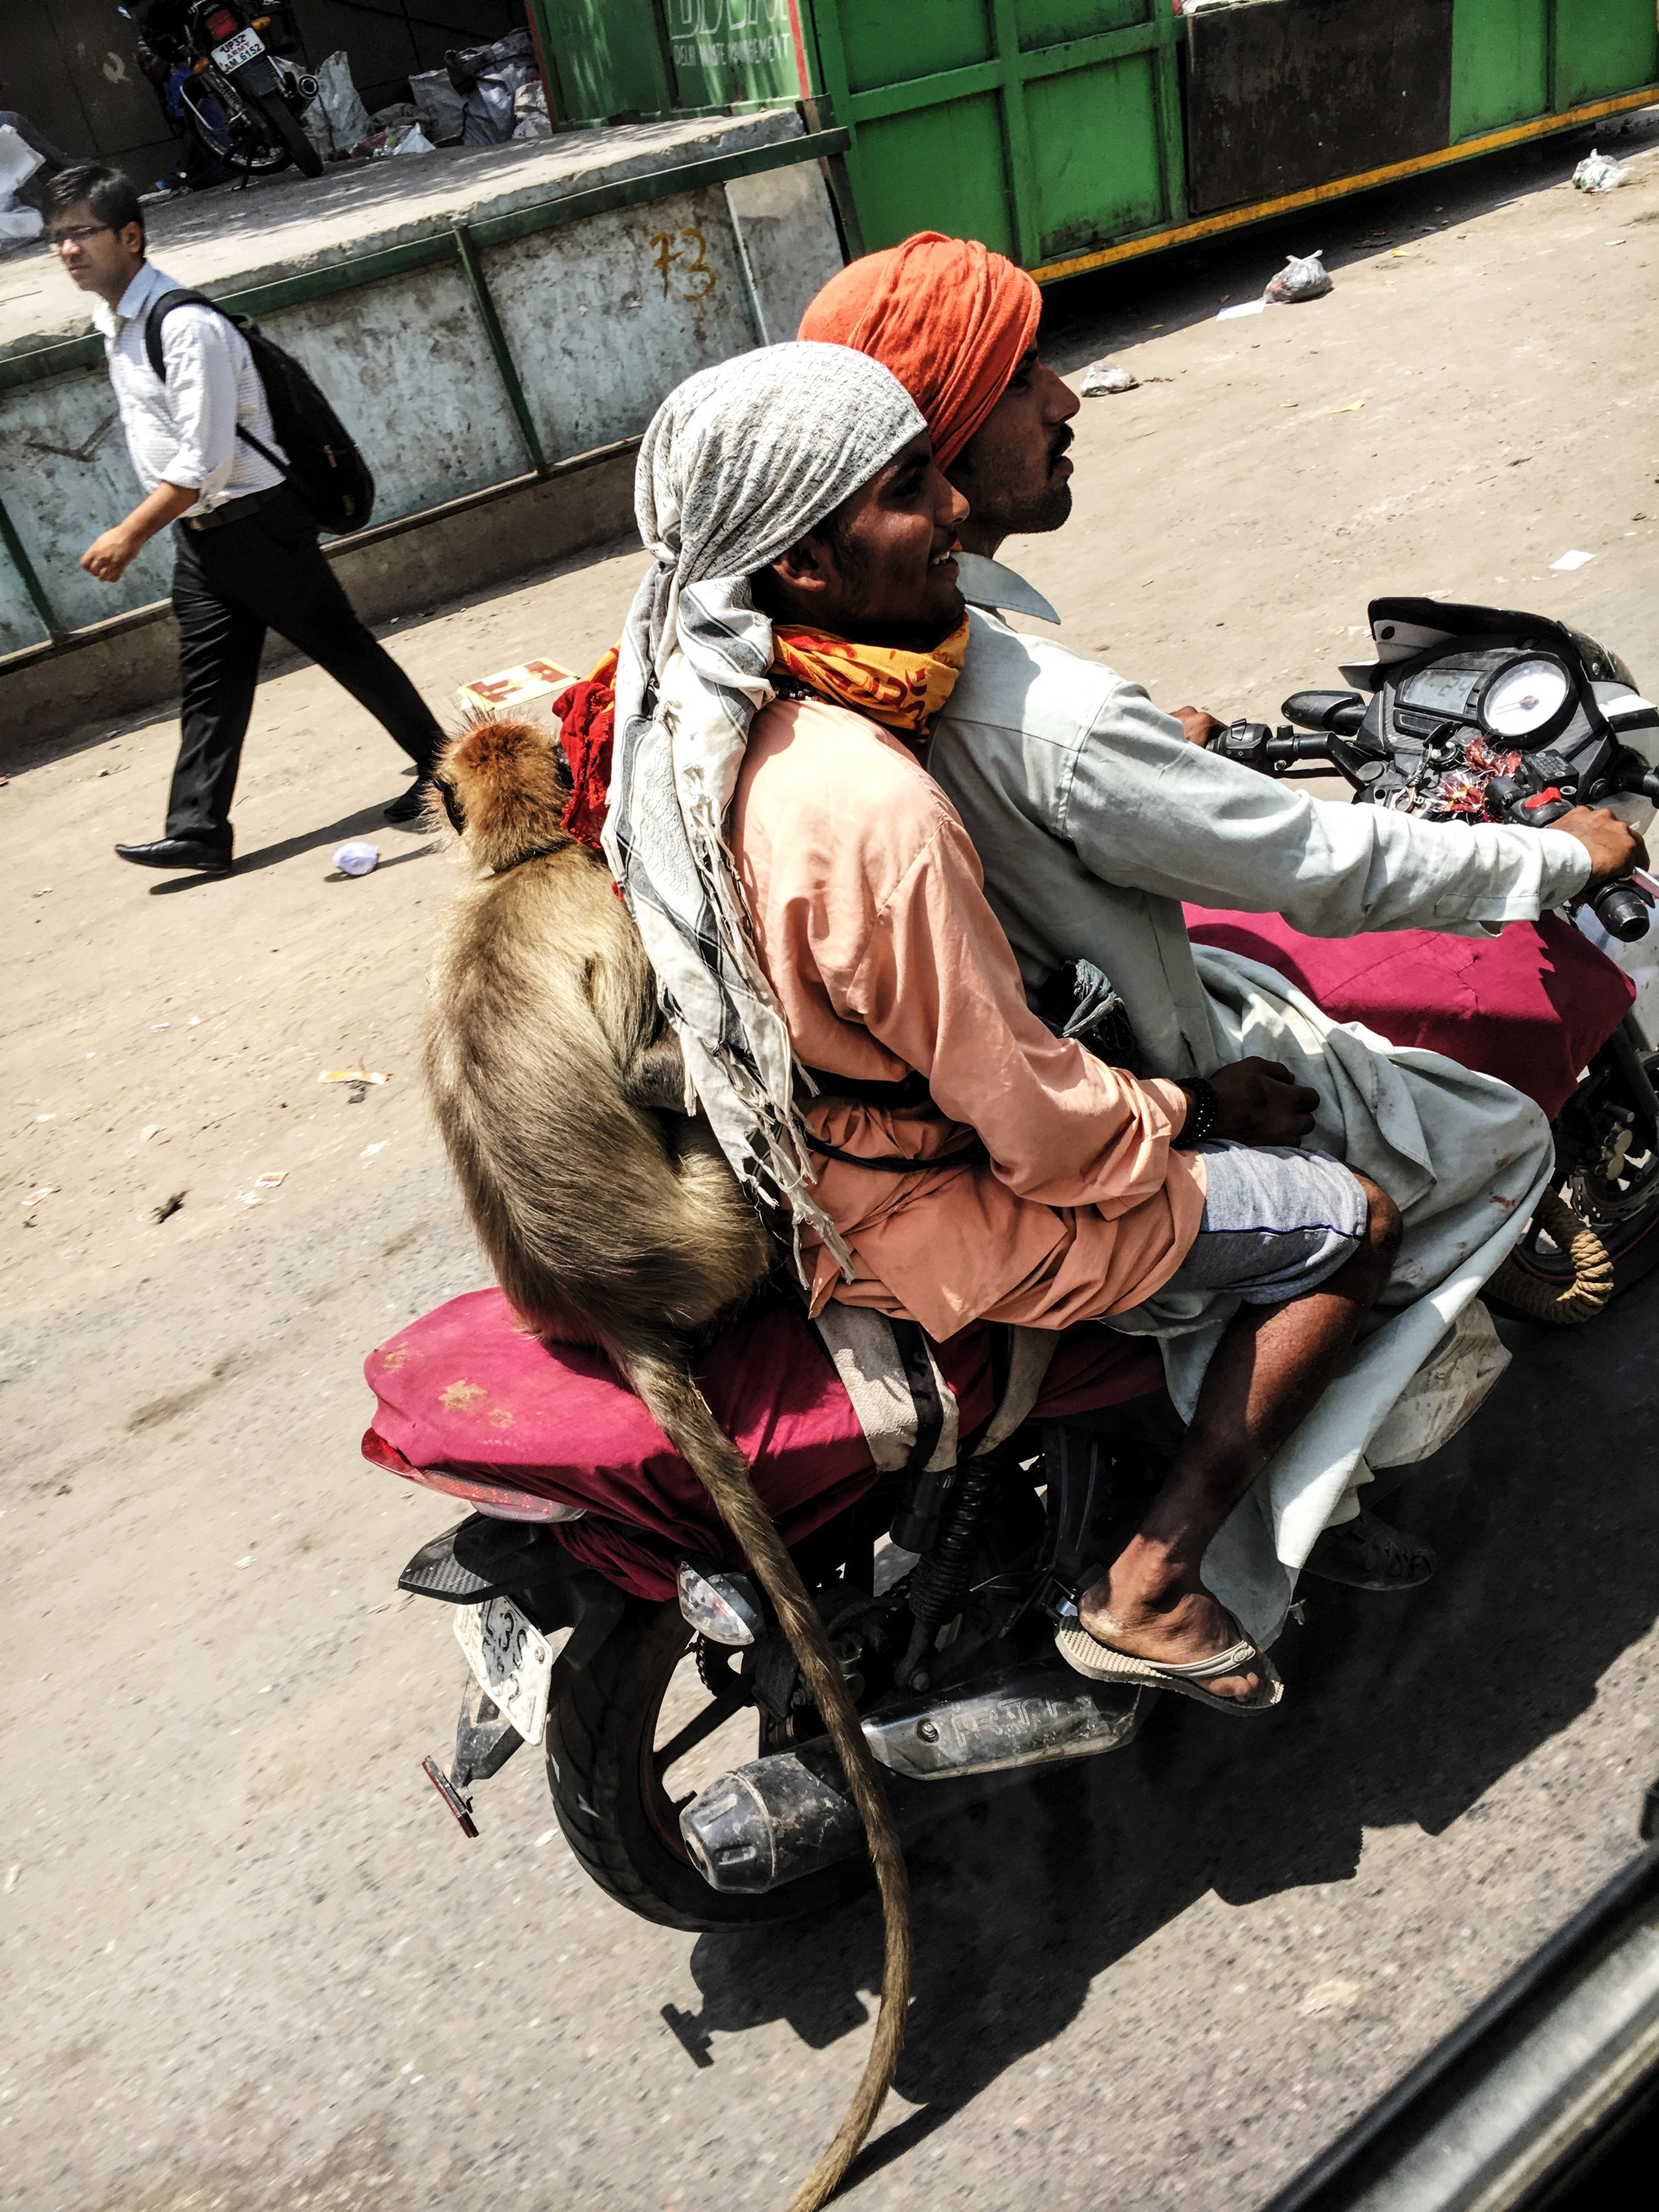 And of course, this. #india